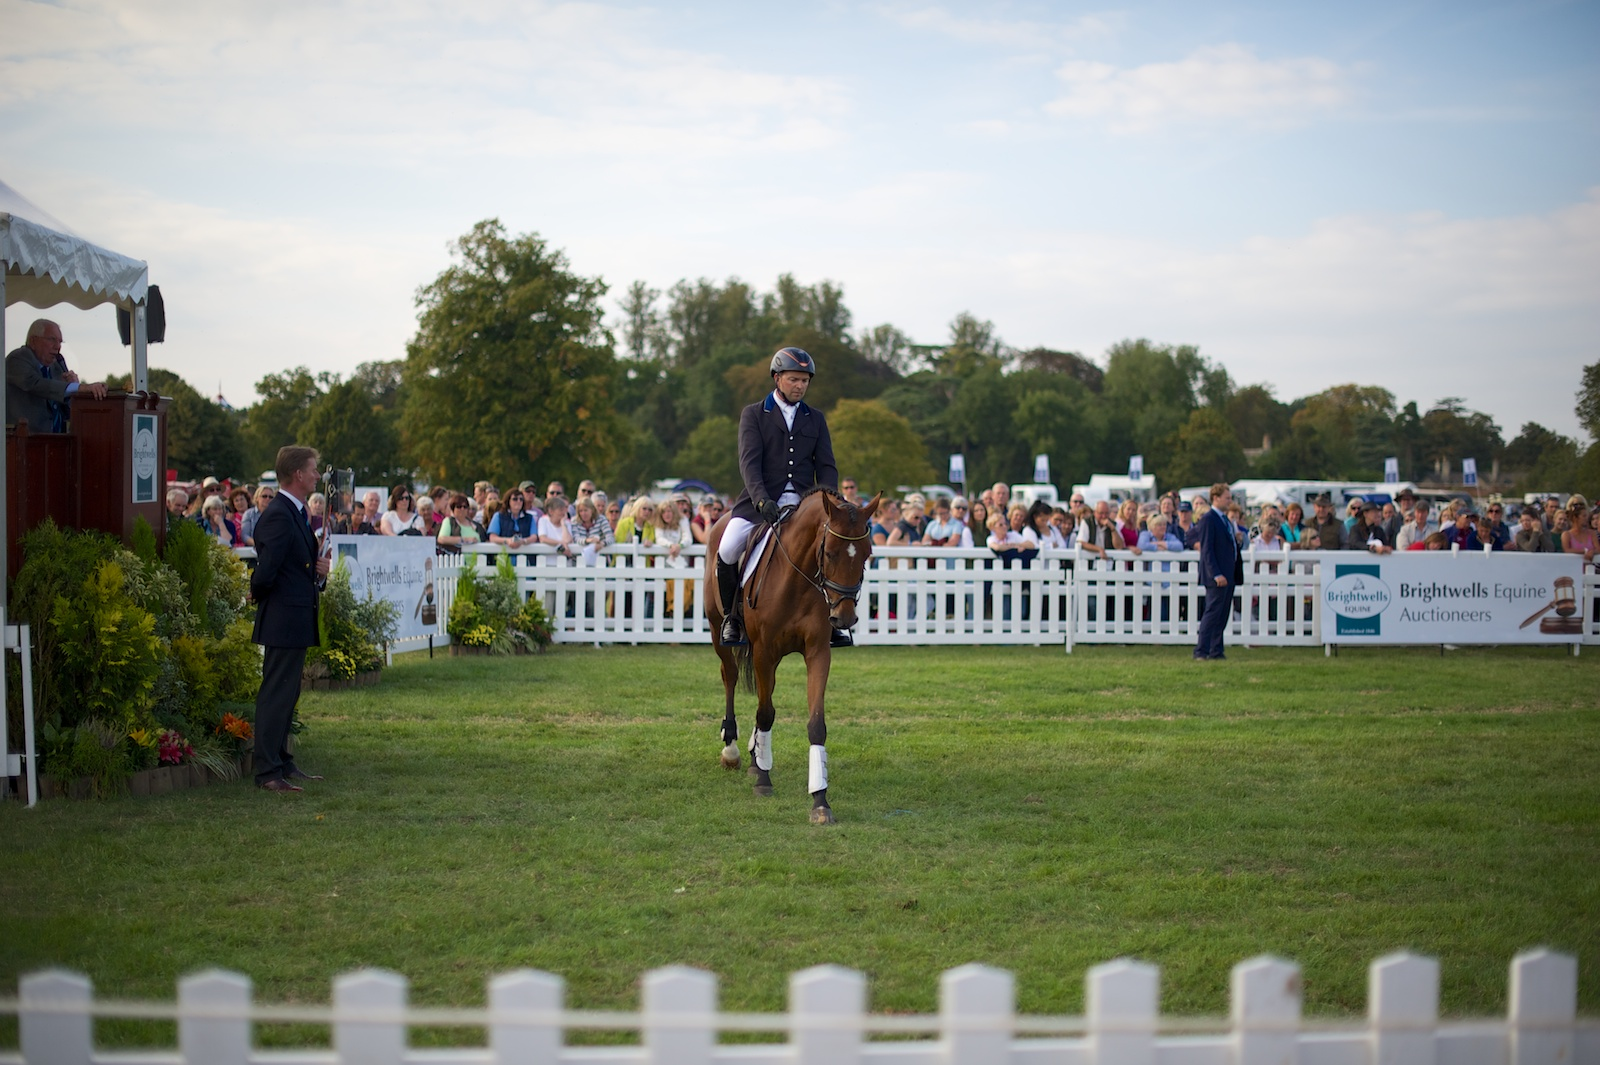 Brightwells Horse Auction At Blenheim